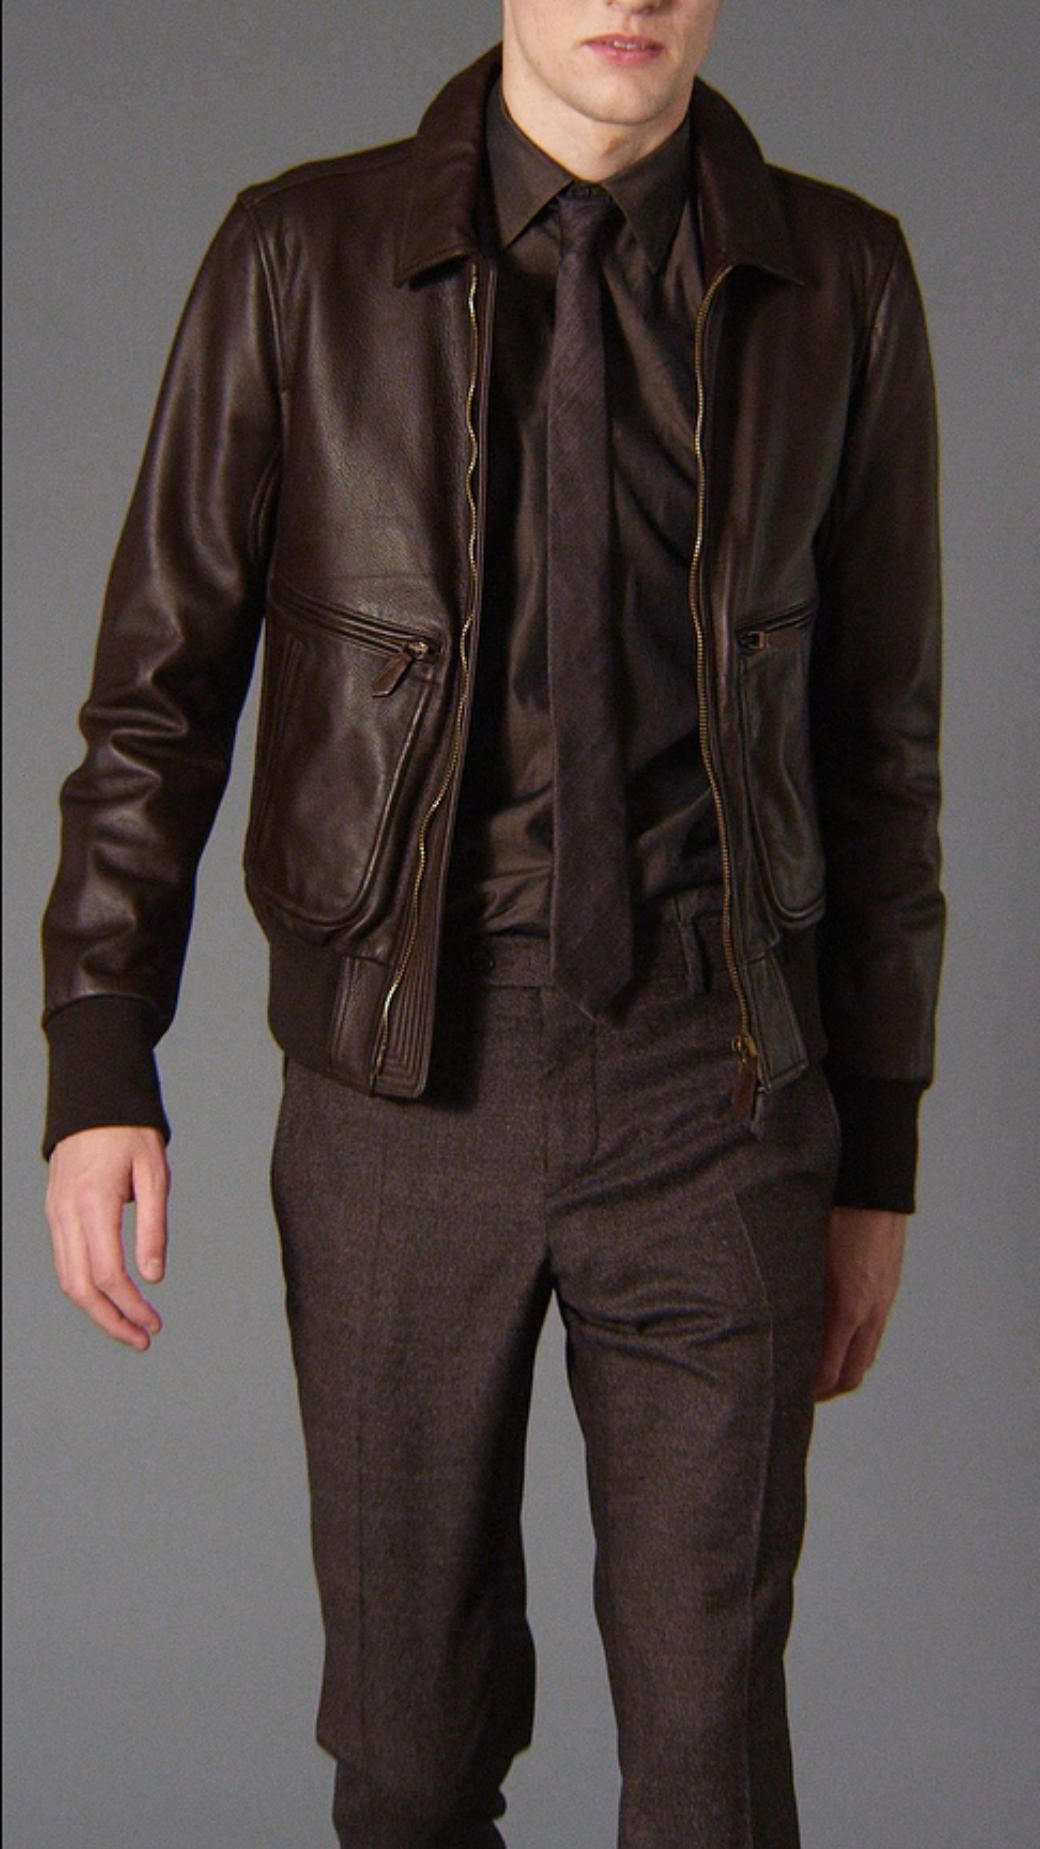 ec91989b1 burberry-leather-bomber-jacket | Be Dapper :) in 2019 | Jackets ...